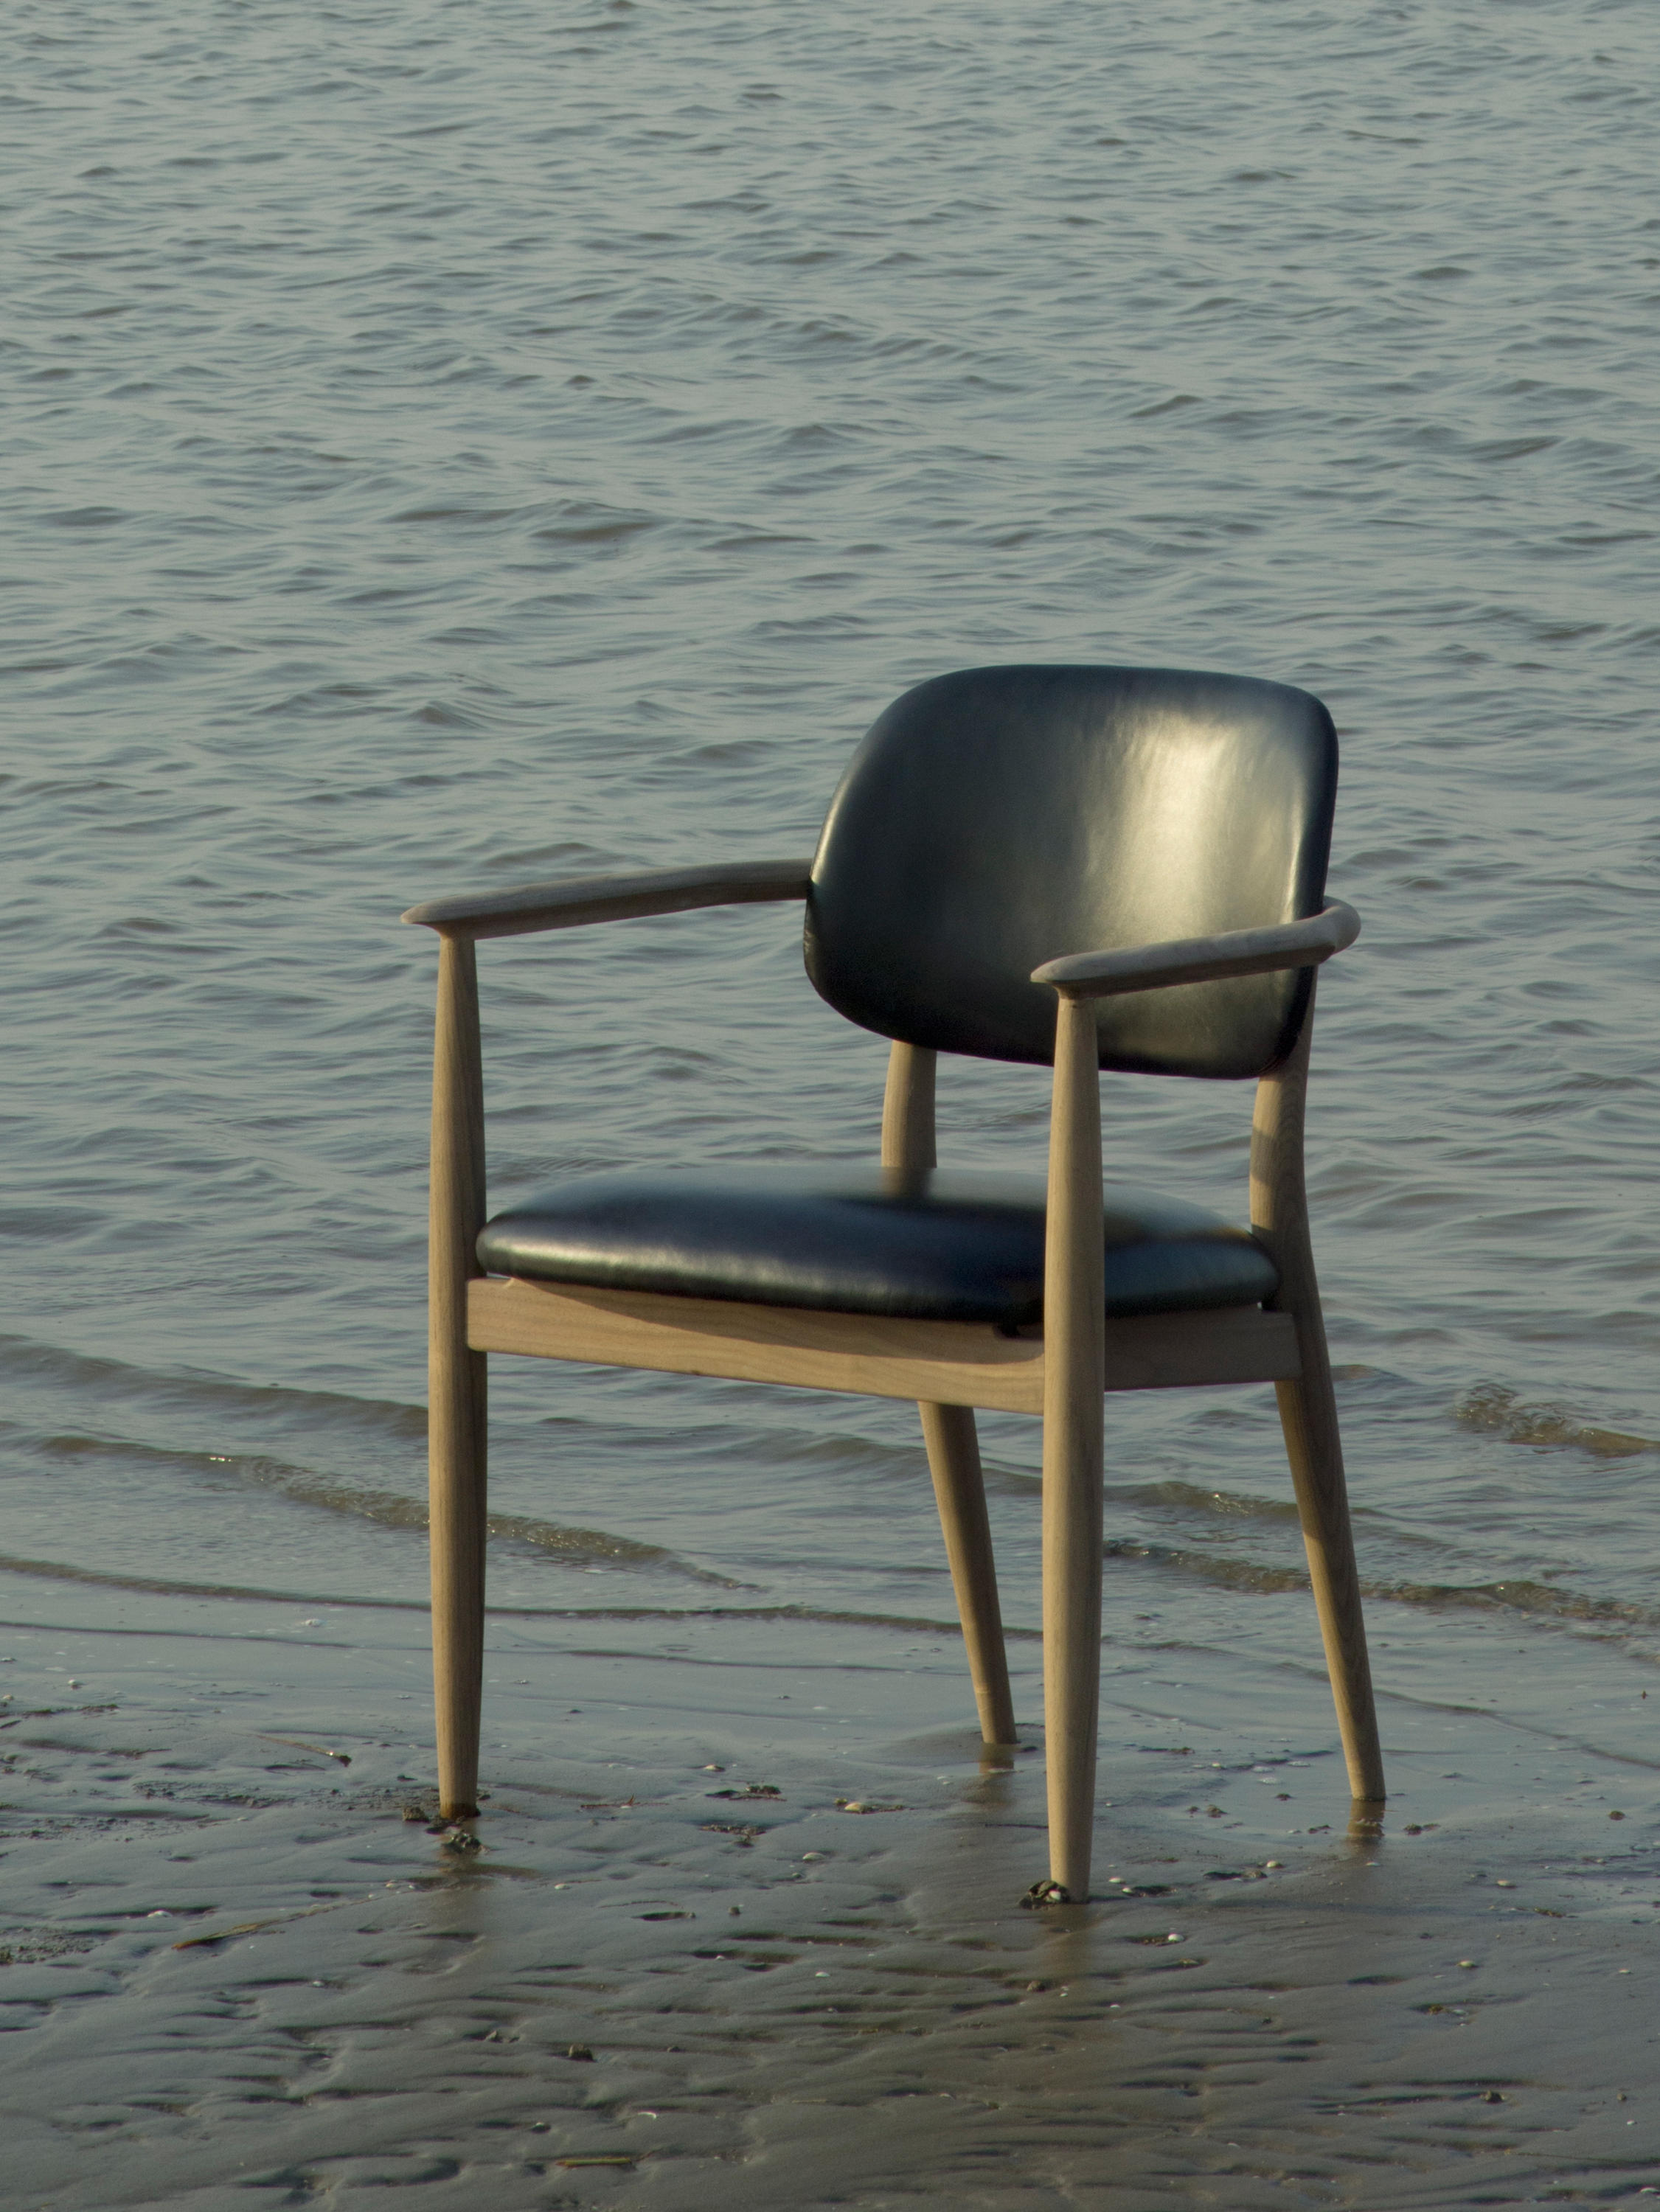 Fabulous Slow Dining Chair Designer Furniture Architonic Caraccident5 Cool Chair Designs And Ideas Caraccident5Info